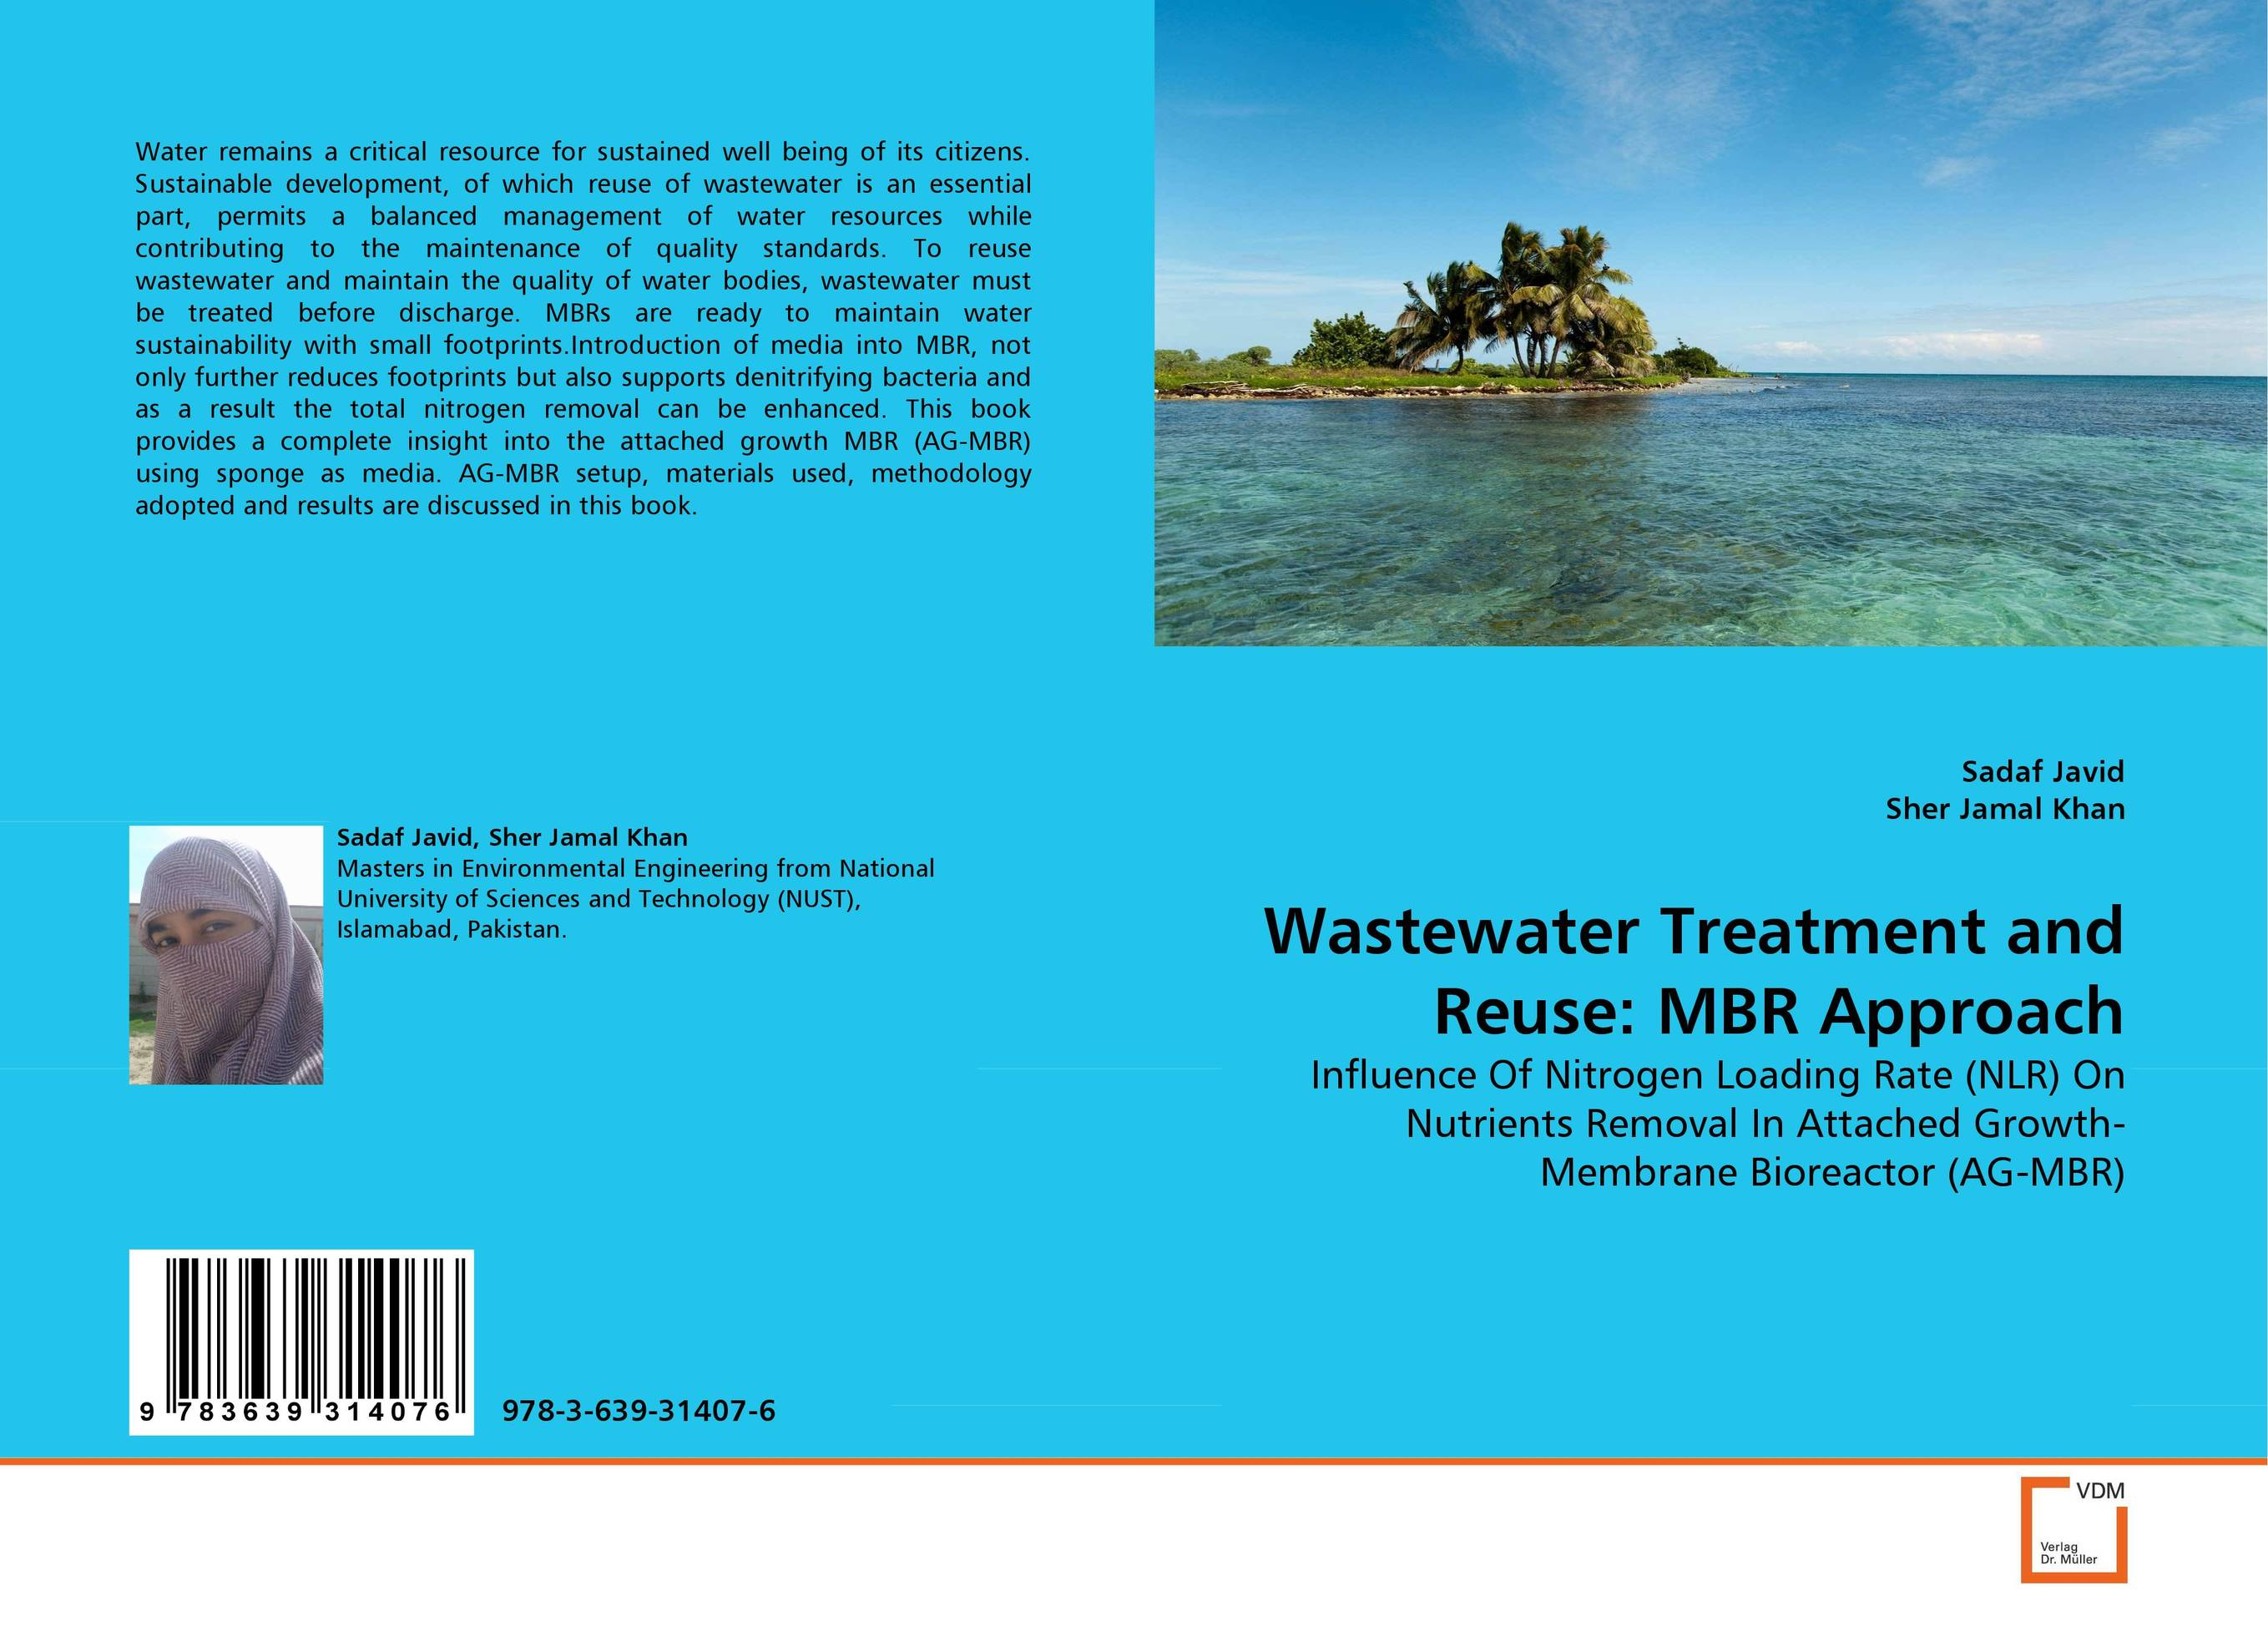 Wastewater Treatment and Reuse: MBR Approach цена